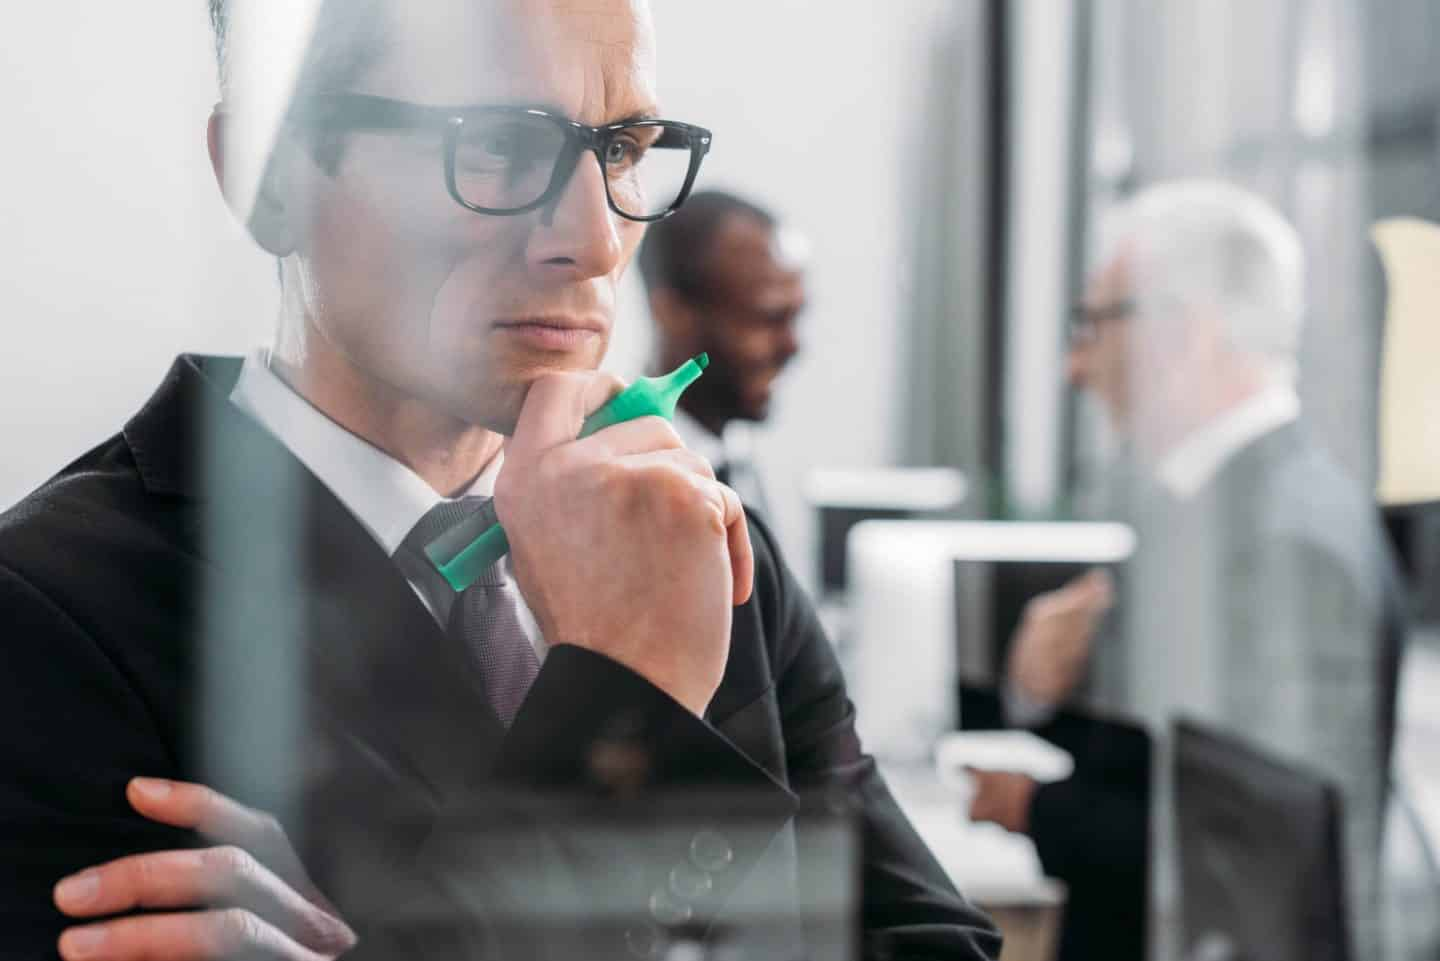 How To Stay Focused When Running a Business